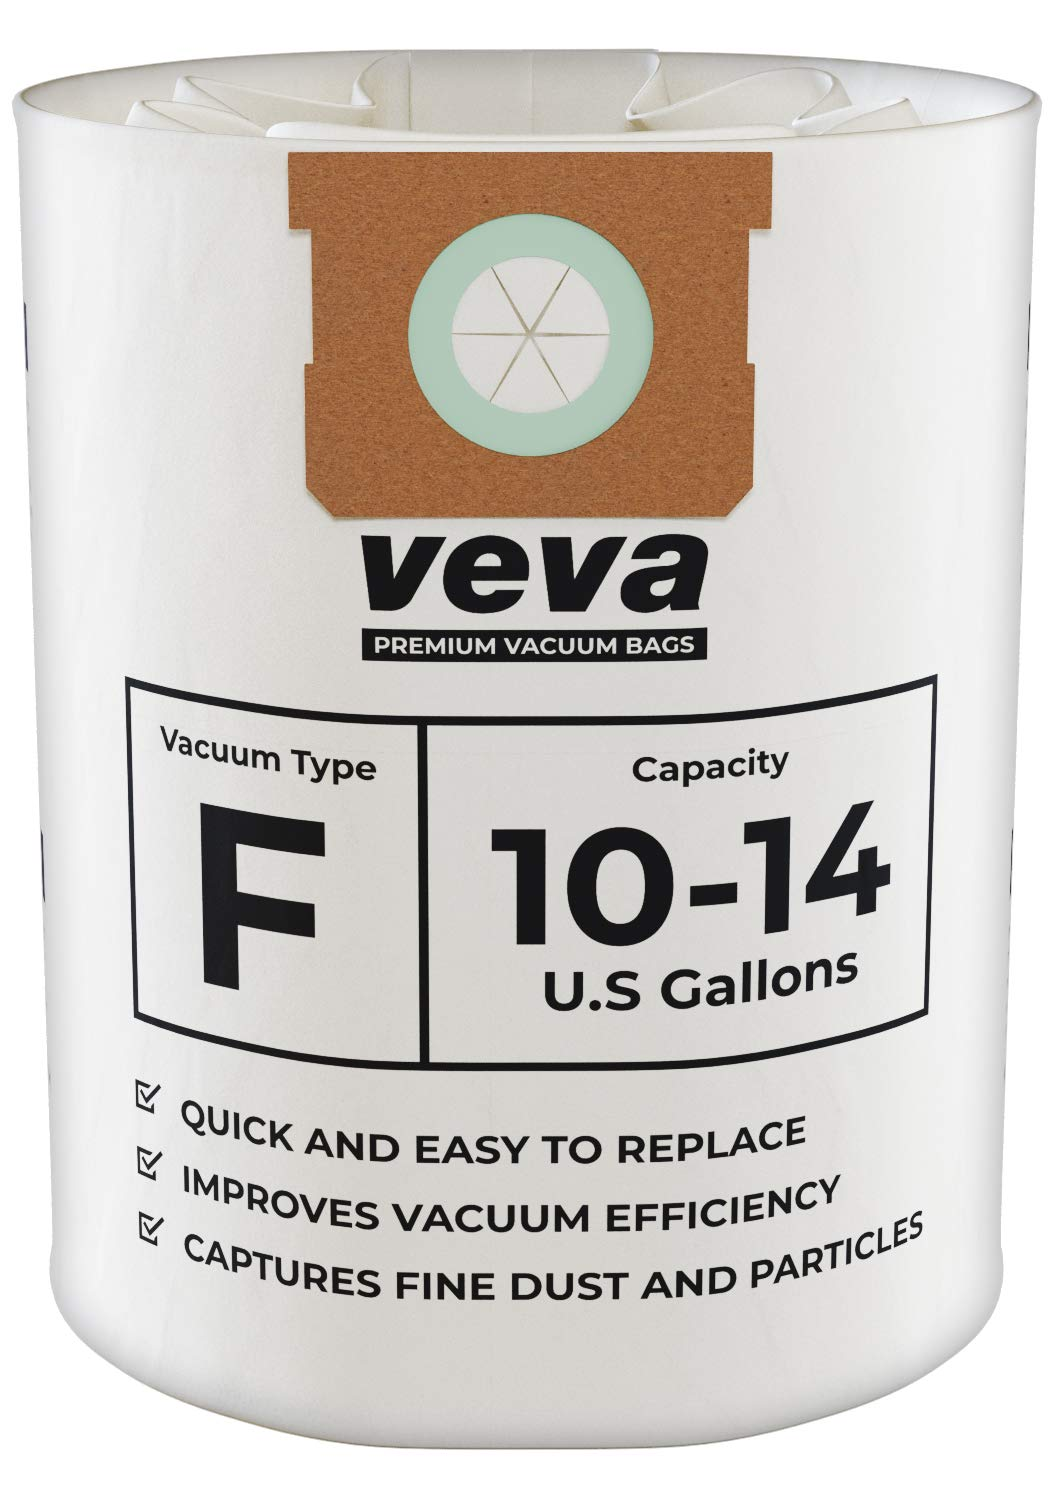 VEVA 15 Pack Premium Vacuum Filter Bags Type F 9066200 Work with Shop Vac 10-14 Gallon Vacuum, Part # SV 90662 by VEVA